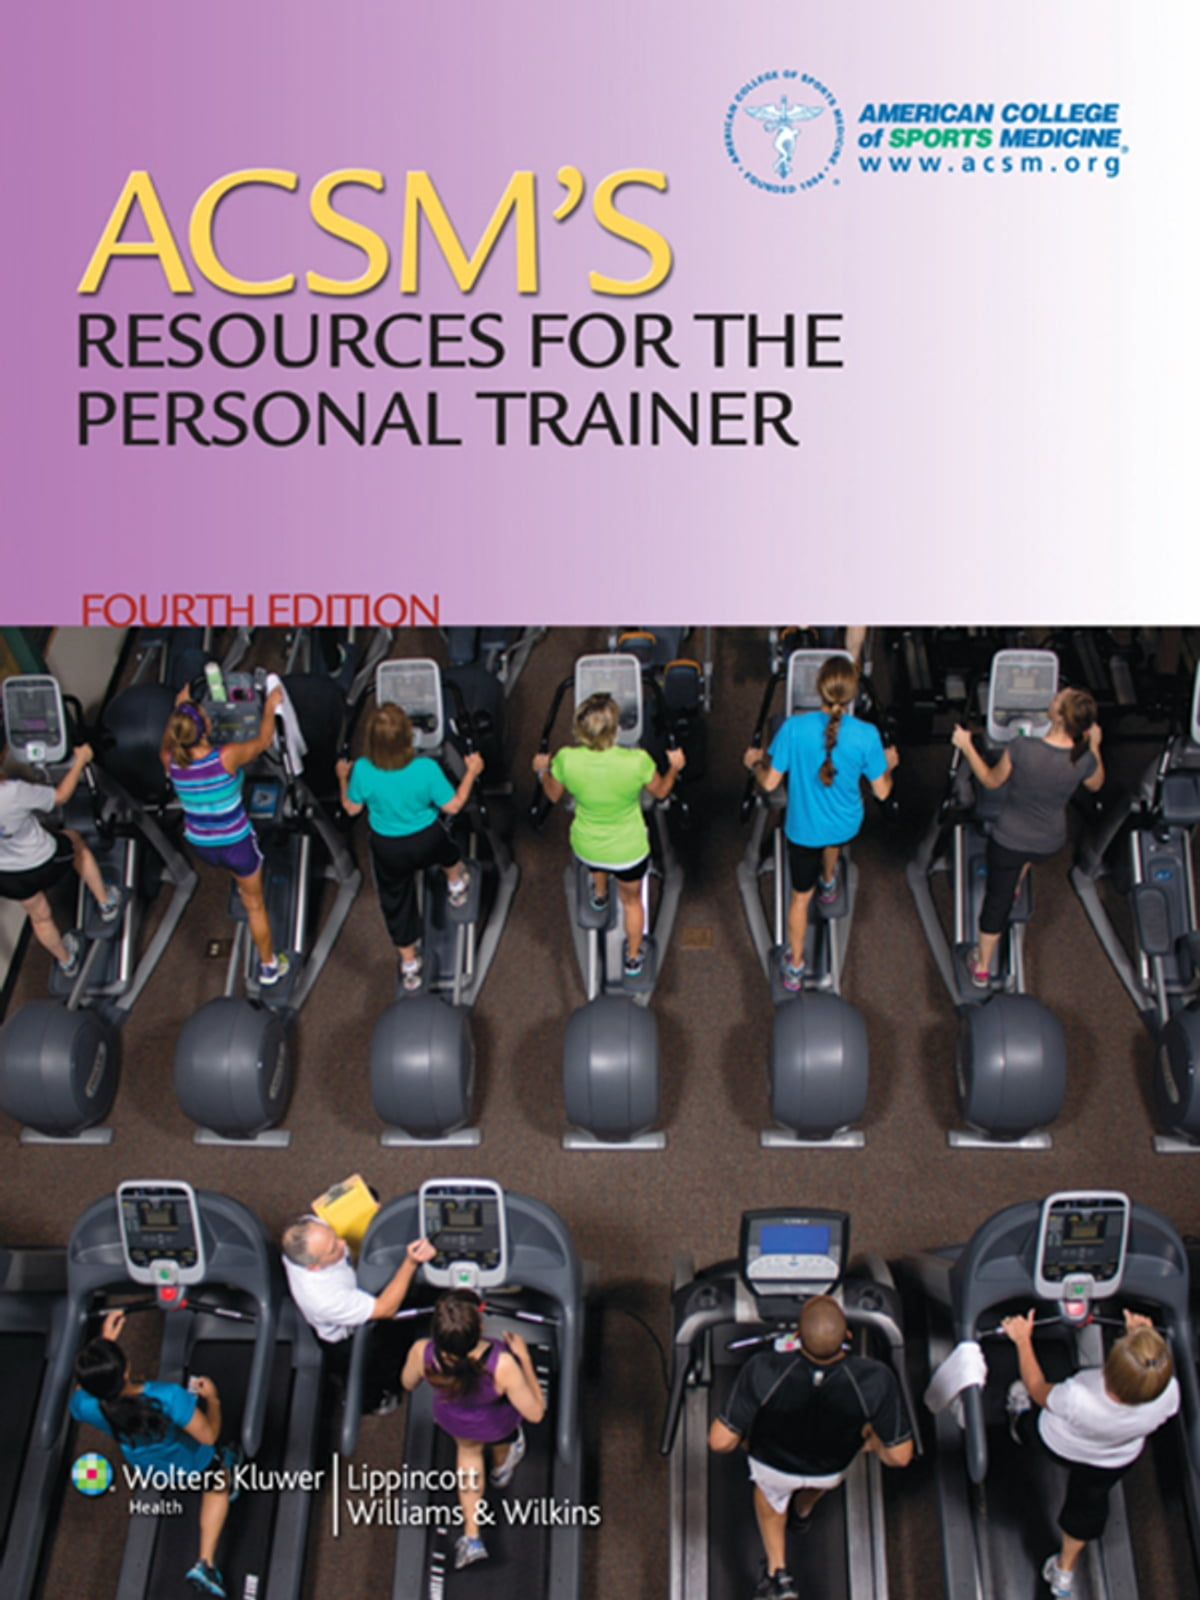 Acsms Resources For The Personal Trainer Ebook By American College